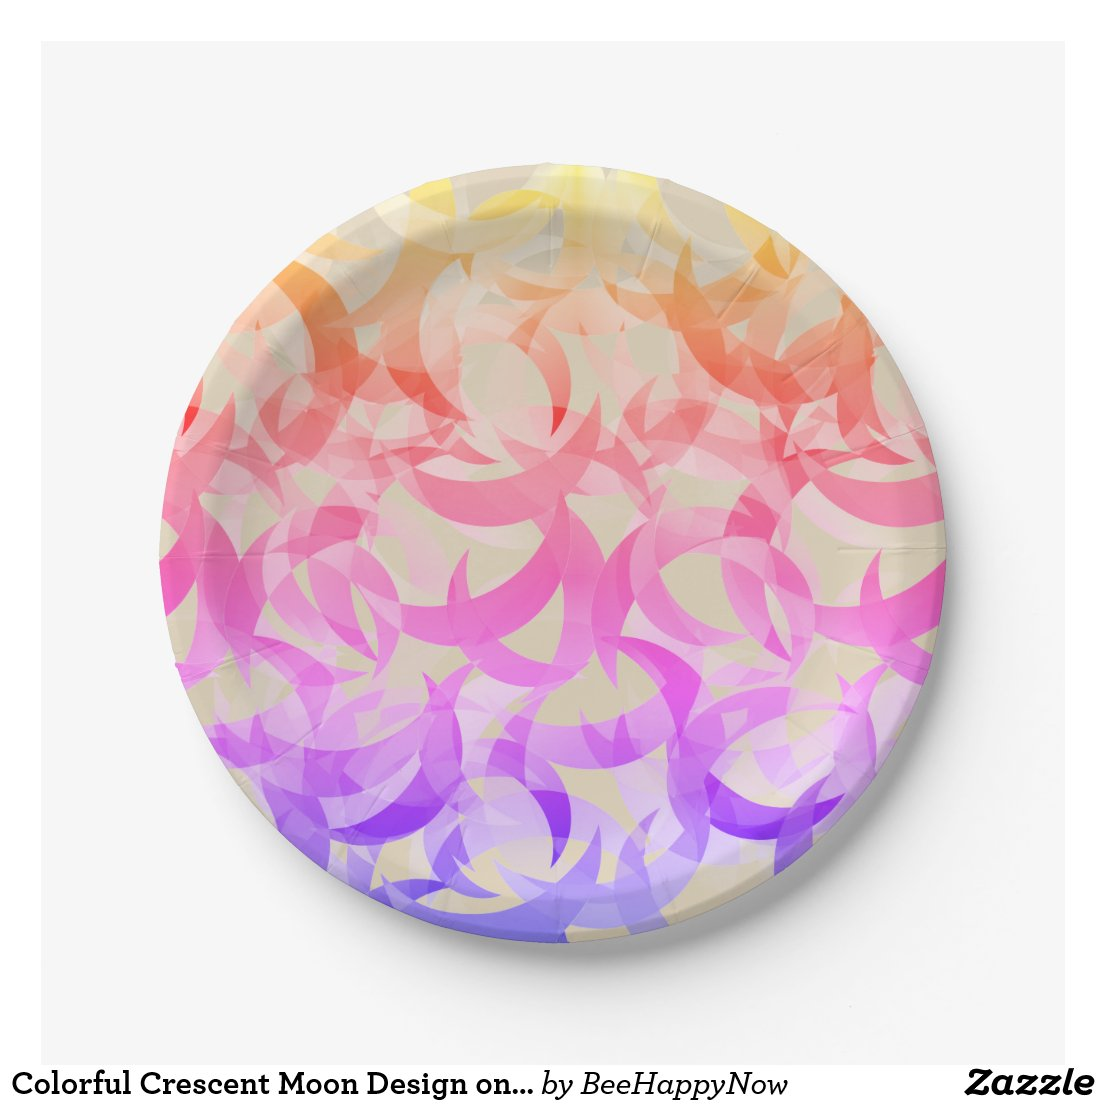 Colorful Crescent Moon Design on Paper Plates